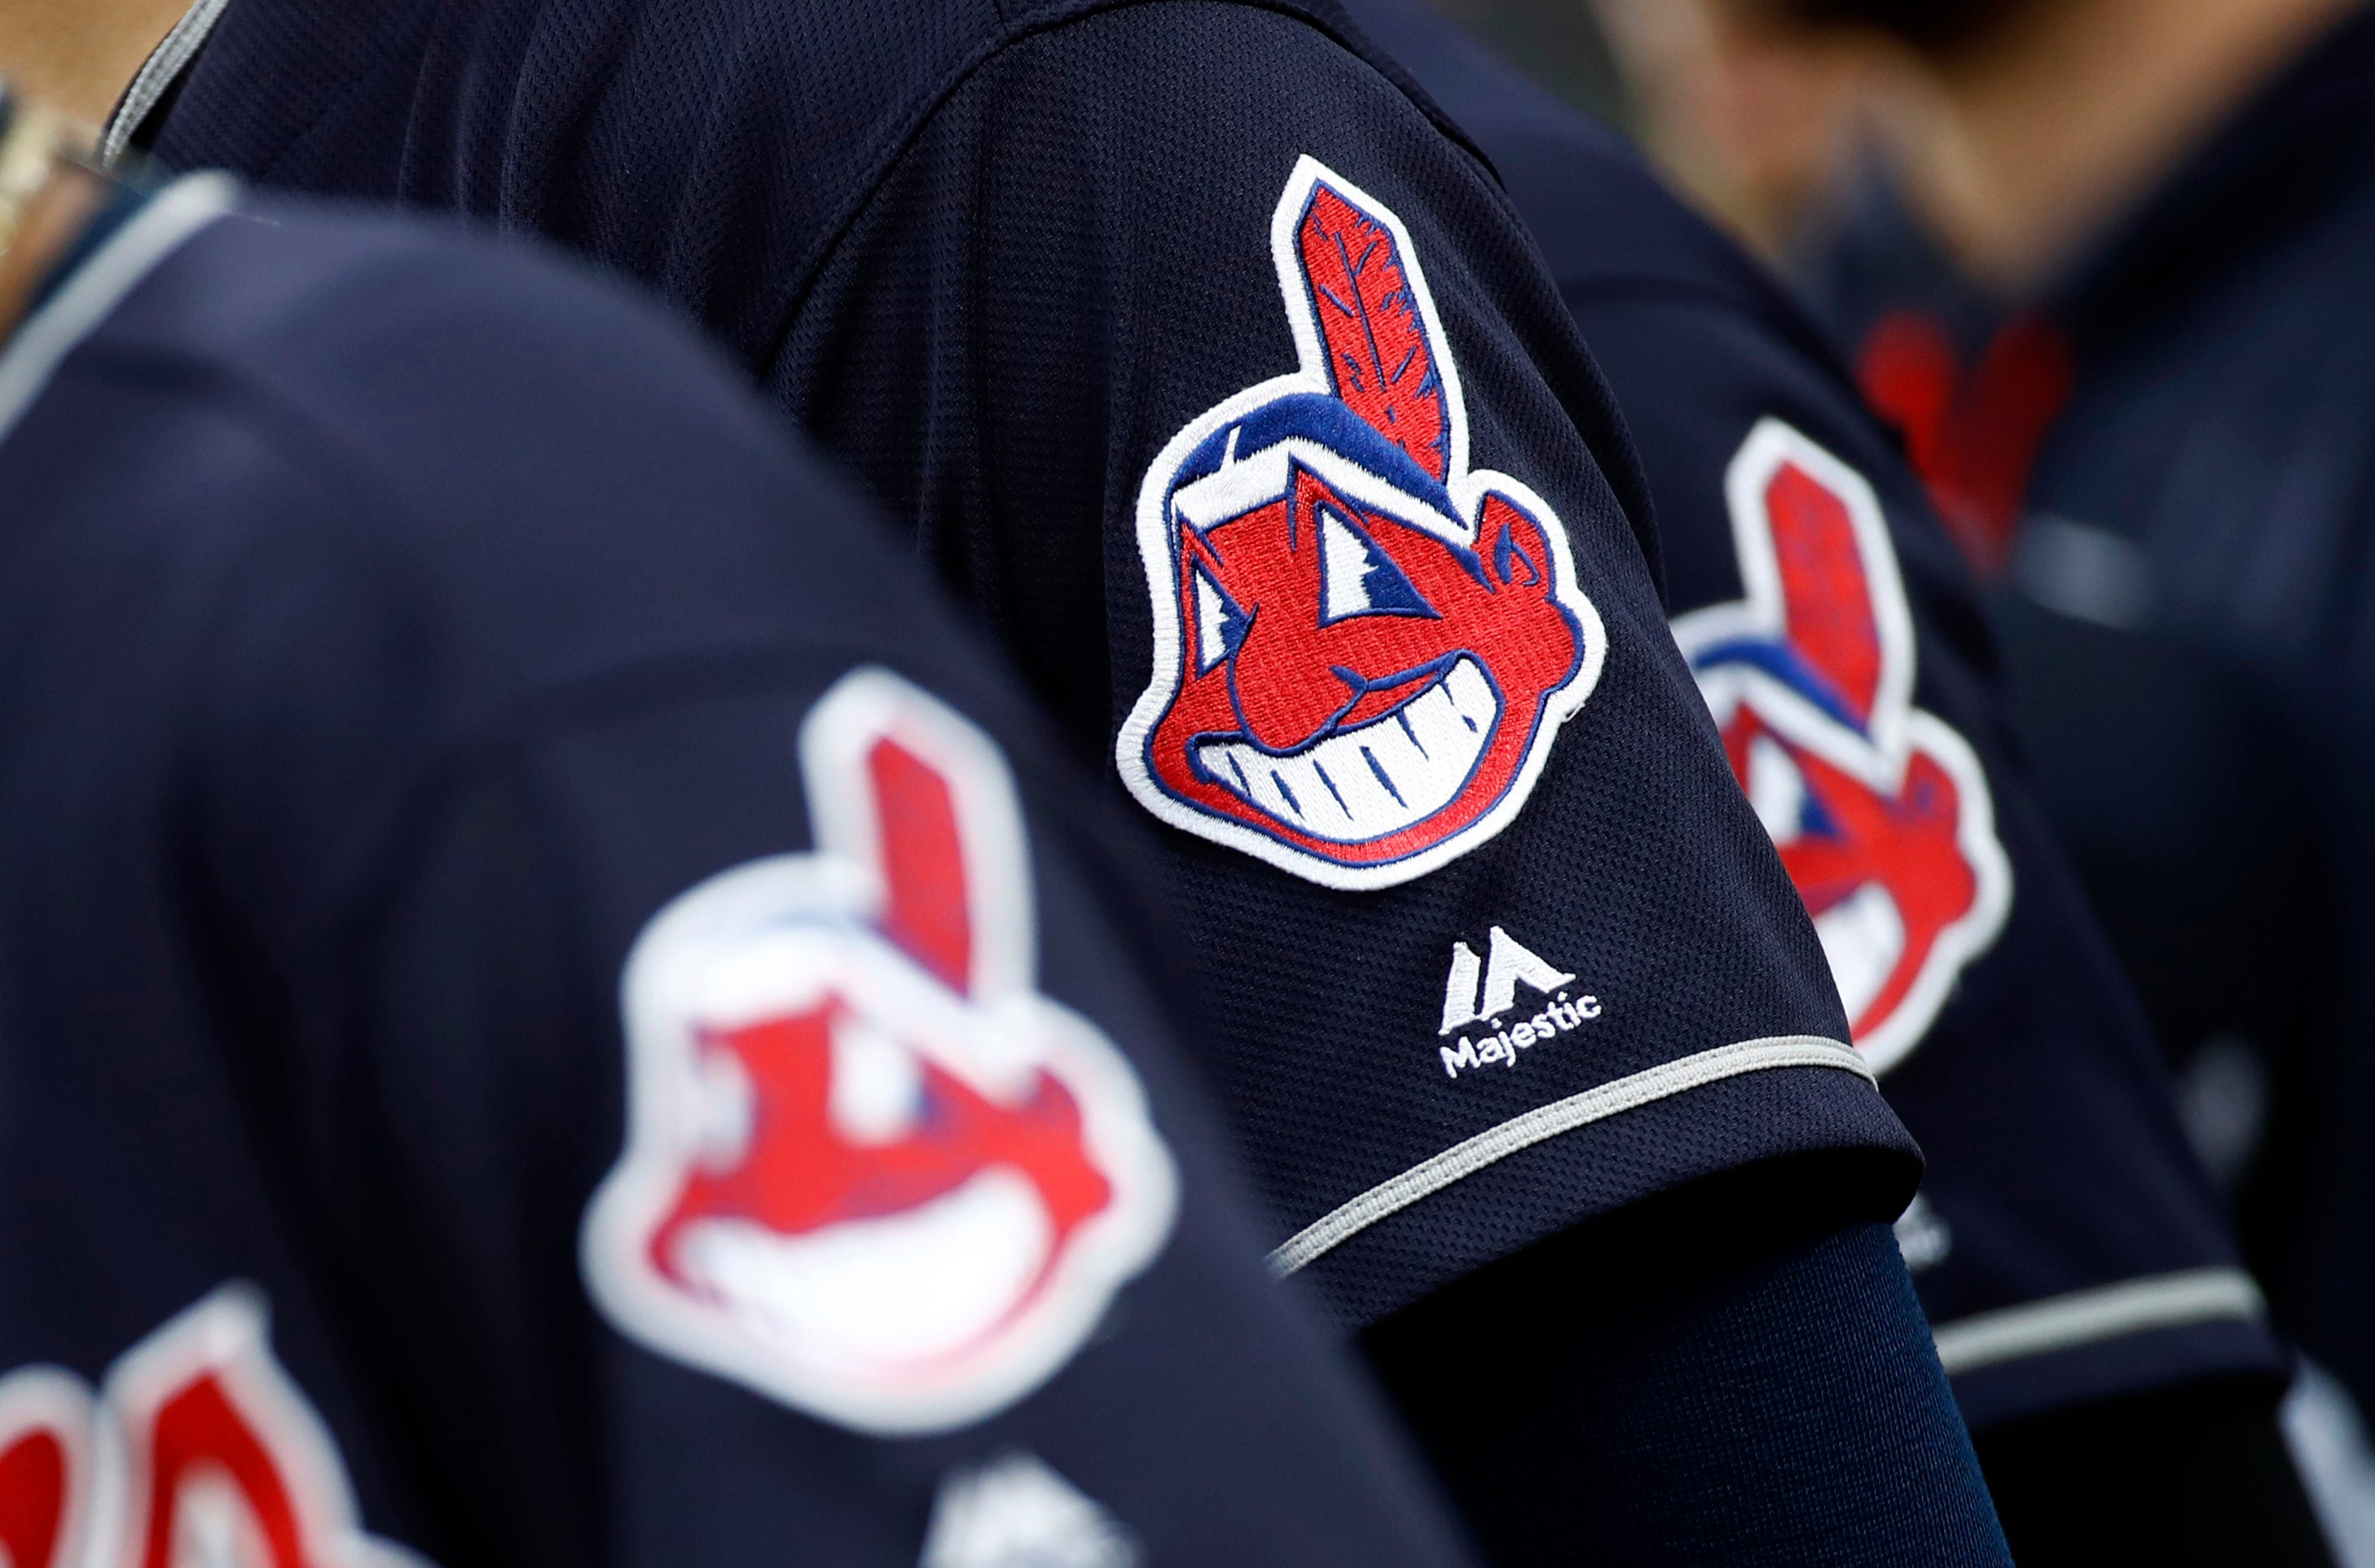 Cleveland Indians changed their name, now for the rest of the racism in corporate America